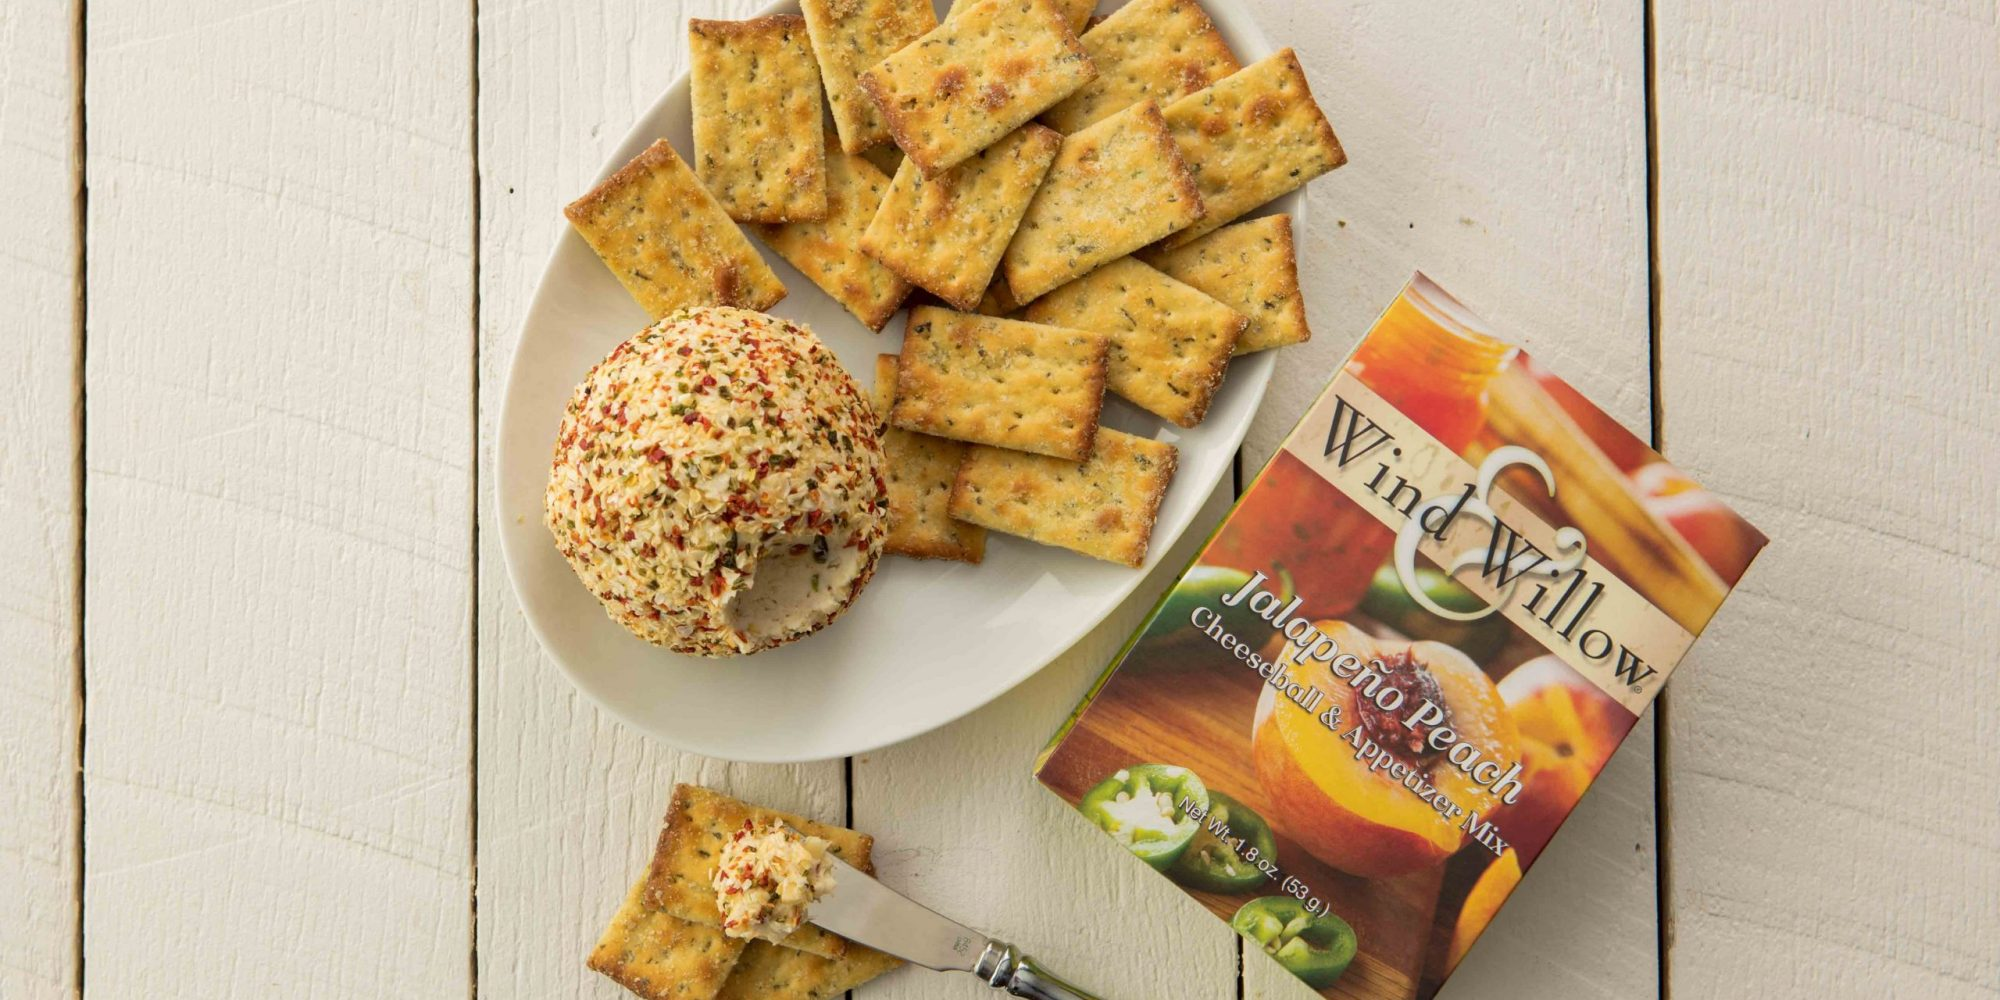 Jalapeno peach cheeseball and crackers, sweet and savory, sweet heat